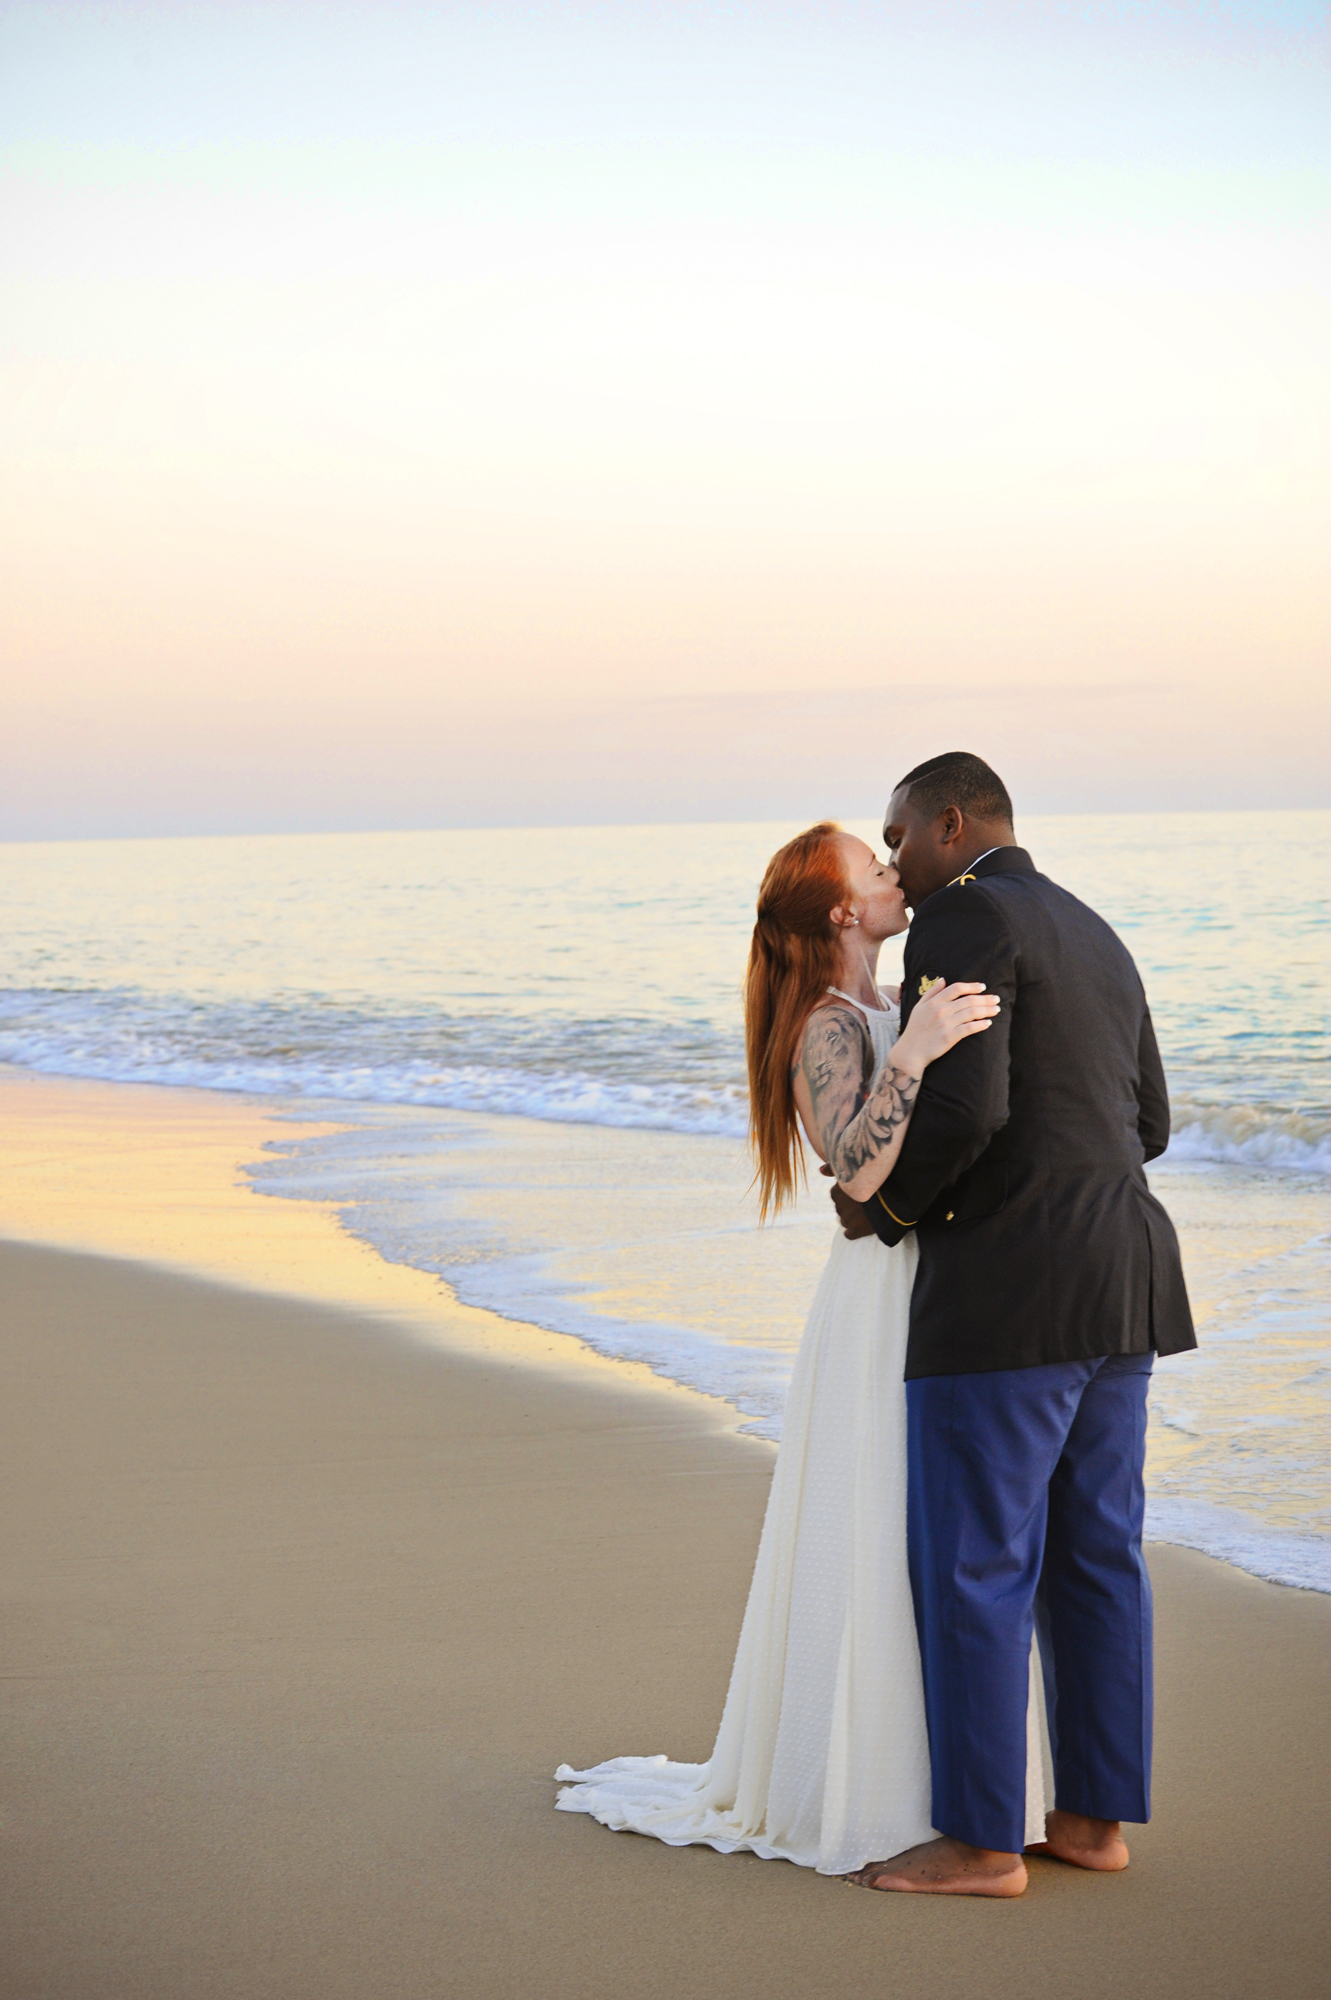 Patrick Boatner, 24, and Kelly Jeans, 20, from Bloomington, Minnesota became husband and wife on Saturday, September 19, 2015 in Dana Point, California at the Palisades Gazebo surrounded by their closest family and friends.  Following the ceremony the bride and groom enjoyed the sunset at Capistrano Beach followed by a family dinner.  Boatner is in the army and proposed to his bride at the airport.  The couple describe their relationship as full of fun, wrestling, watching Netflix, and love.